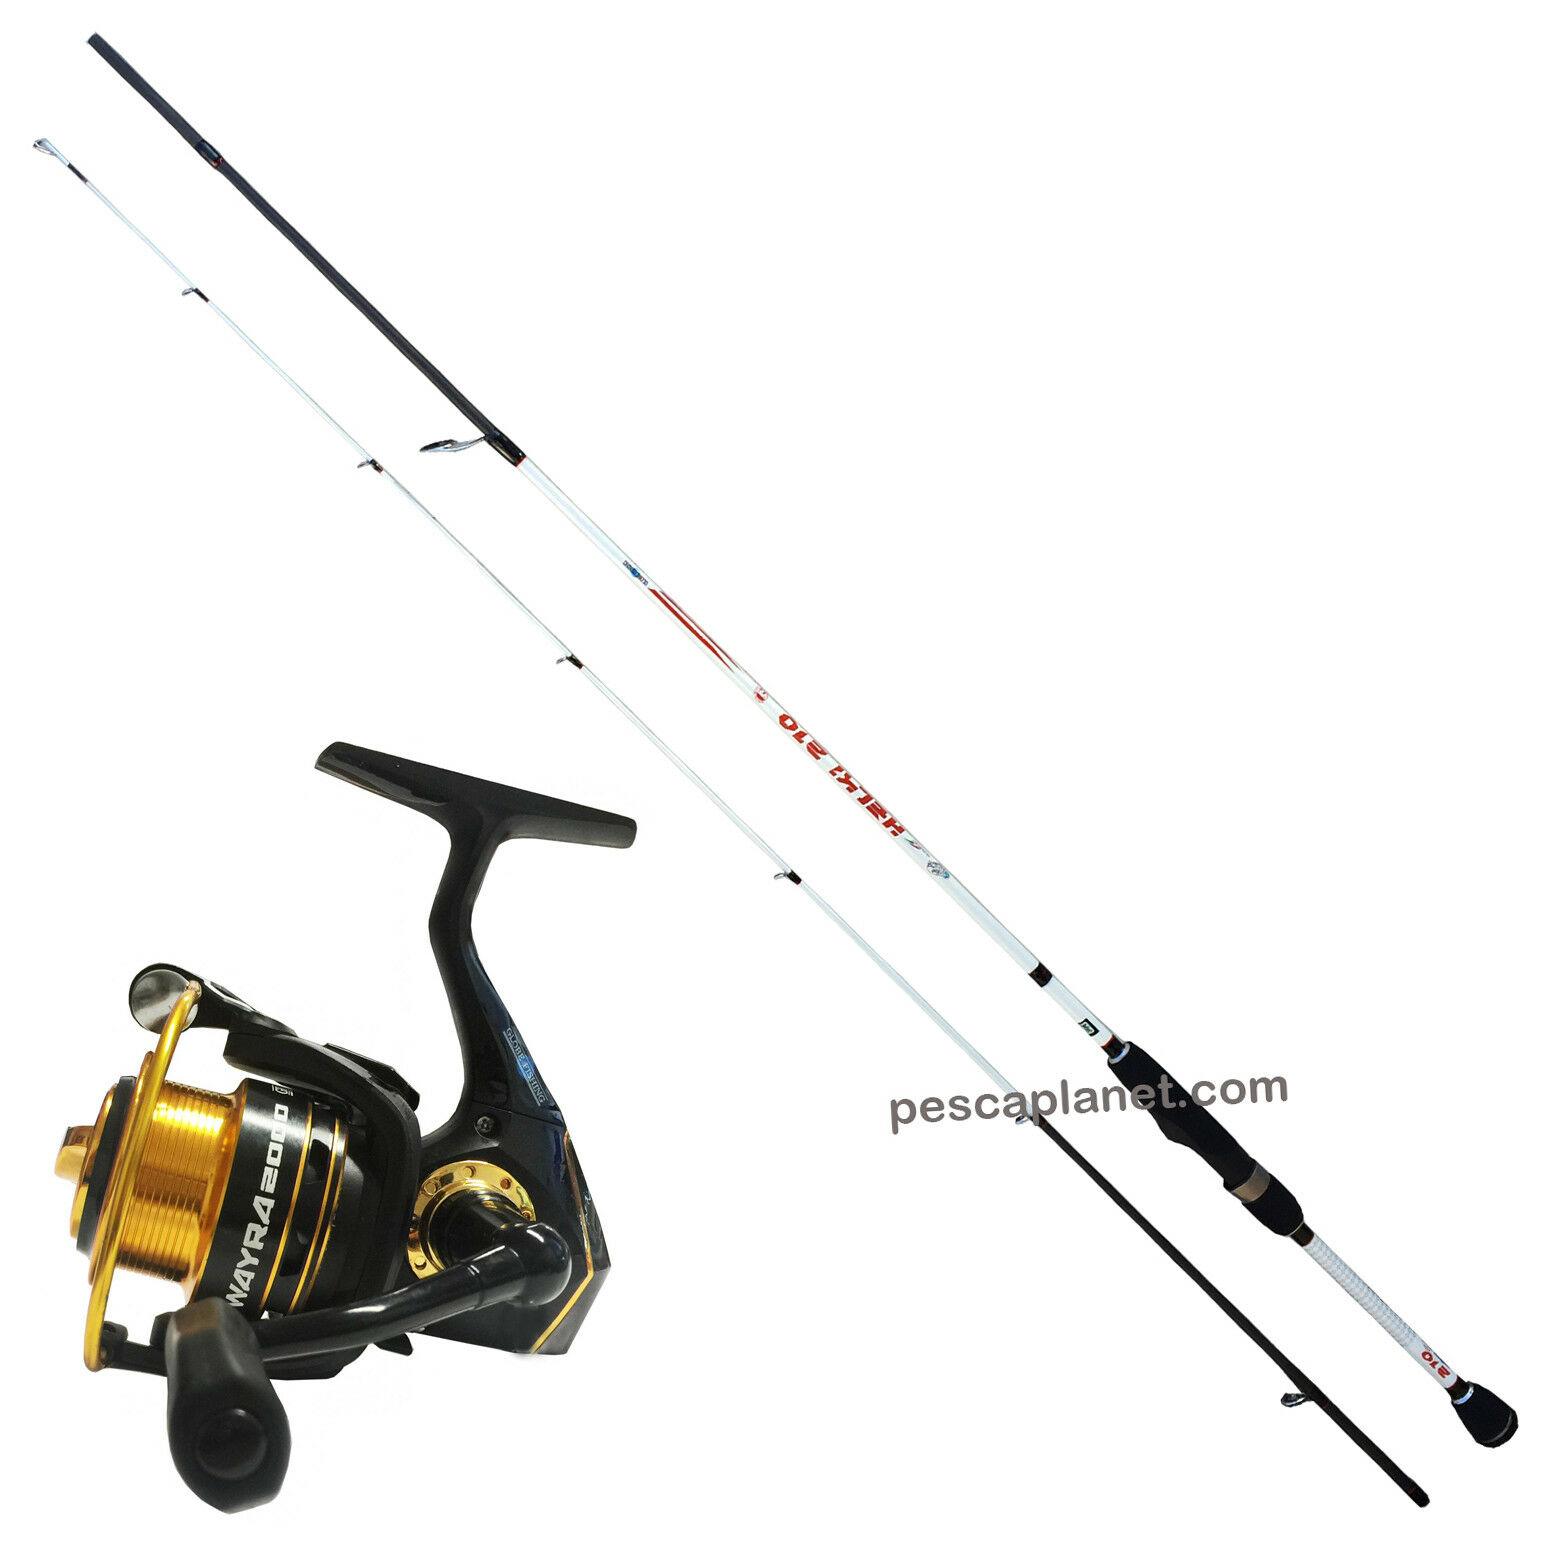 KP3551 Kit Pesca Trout Area Globe Fishing Canna Helki 2,10 m + Mulinello Wa PP